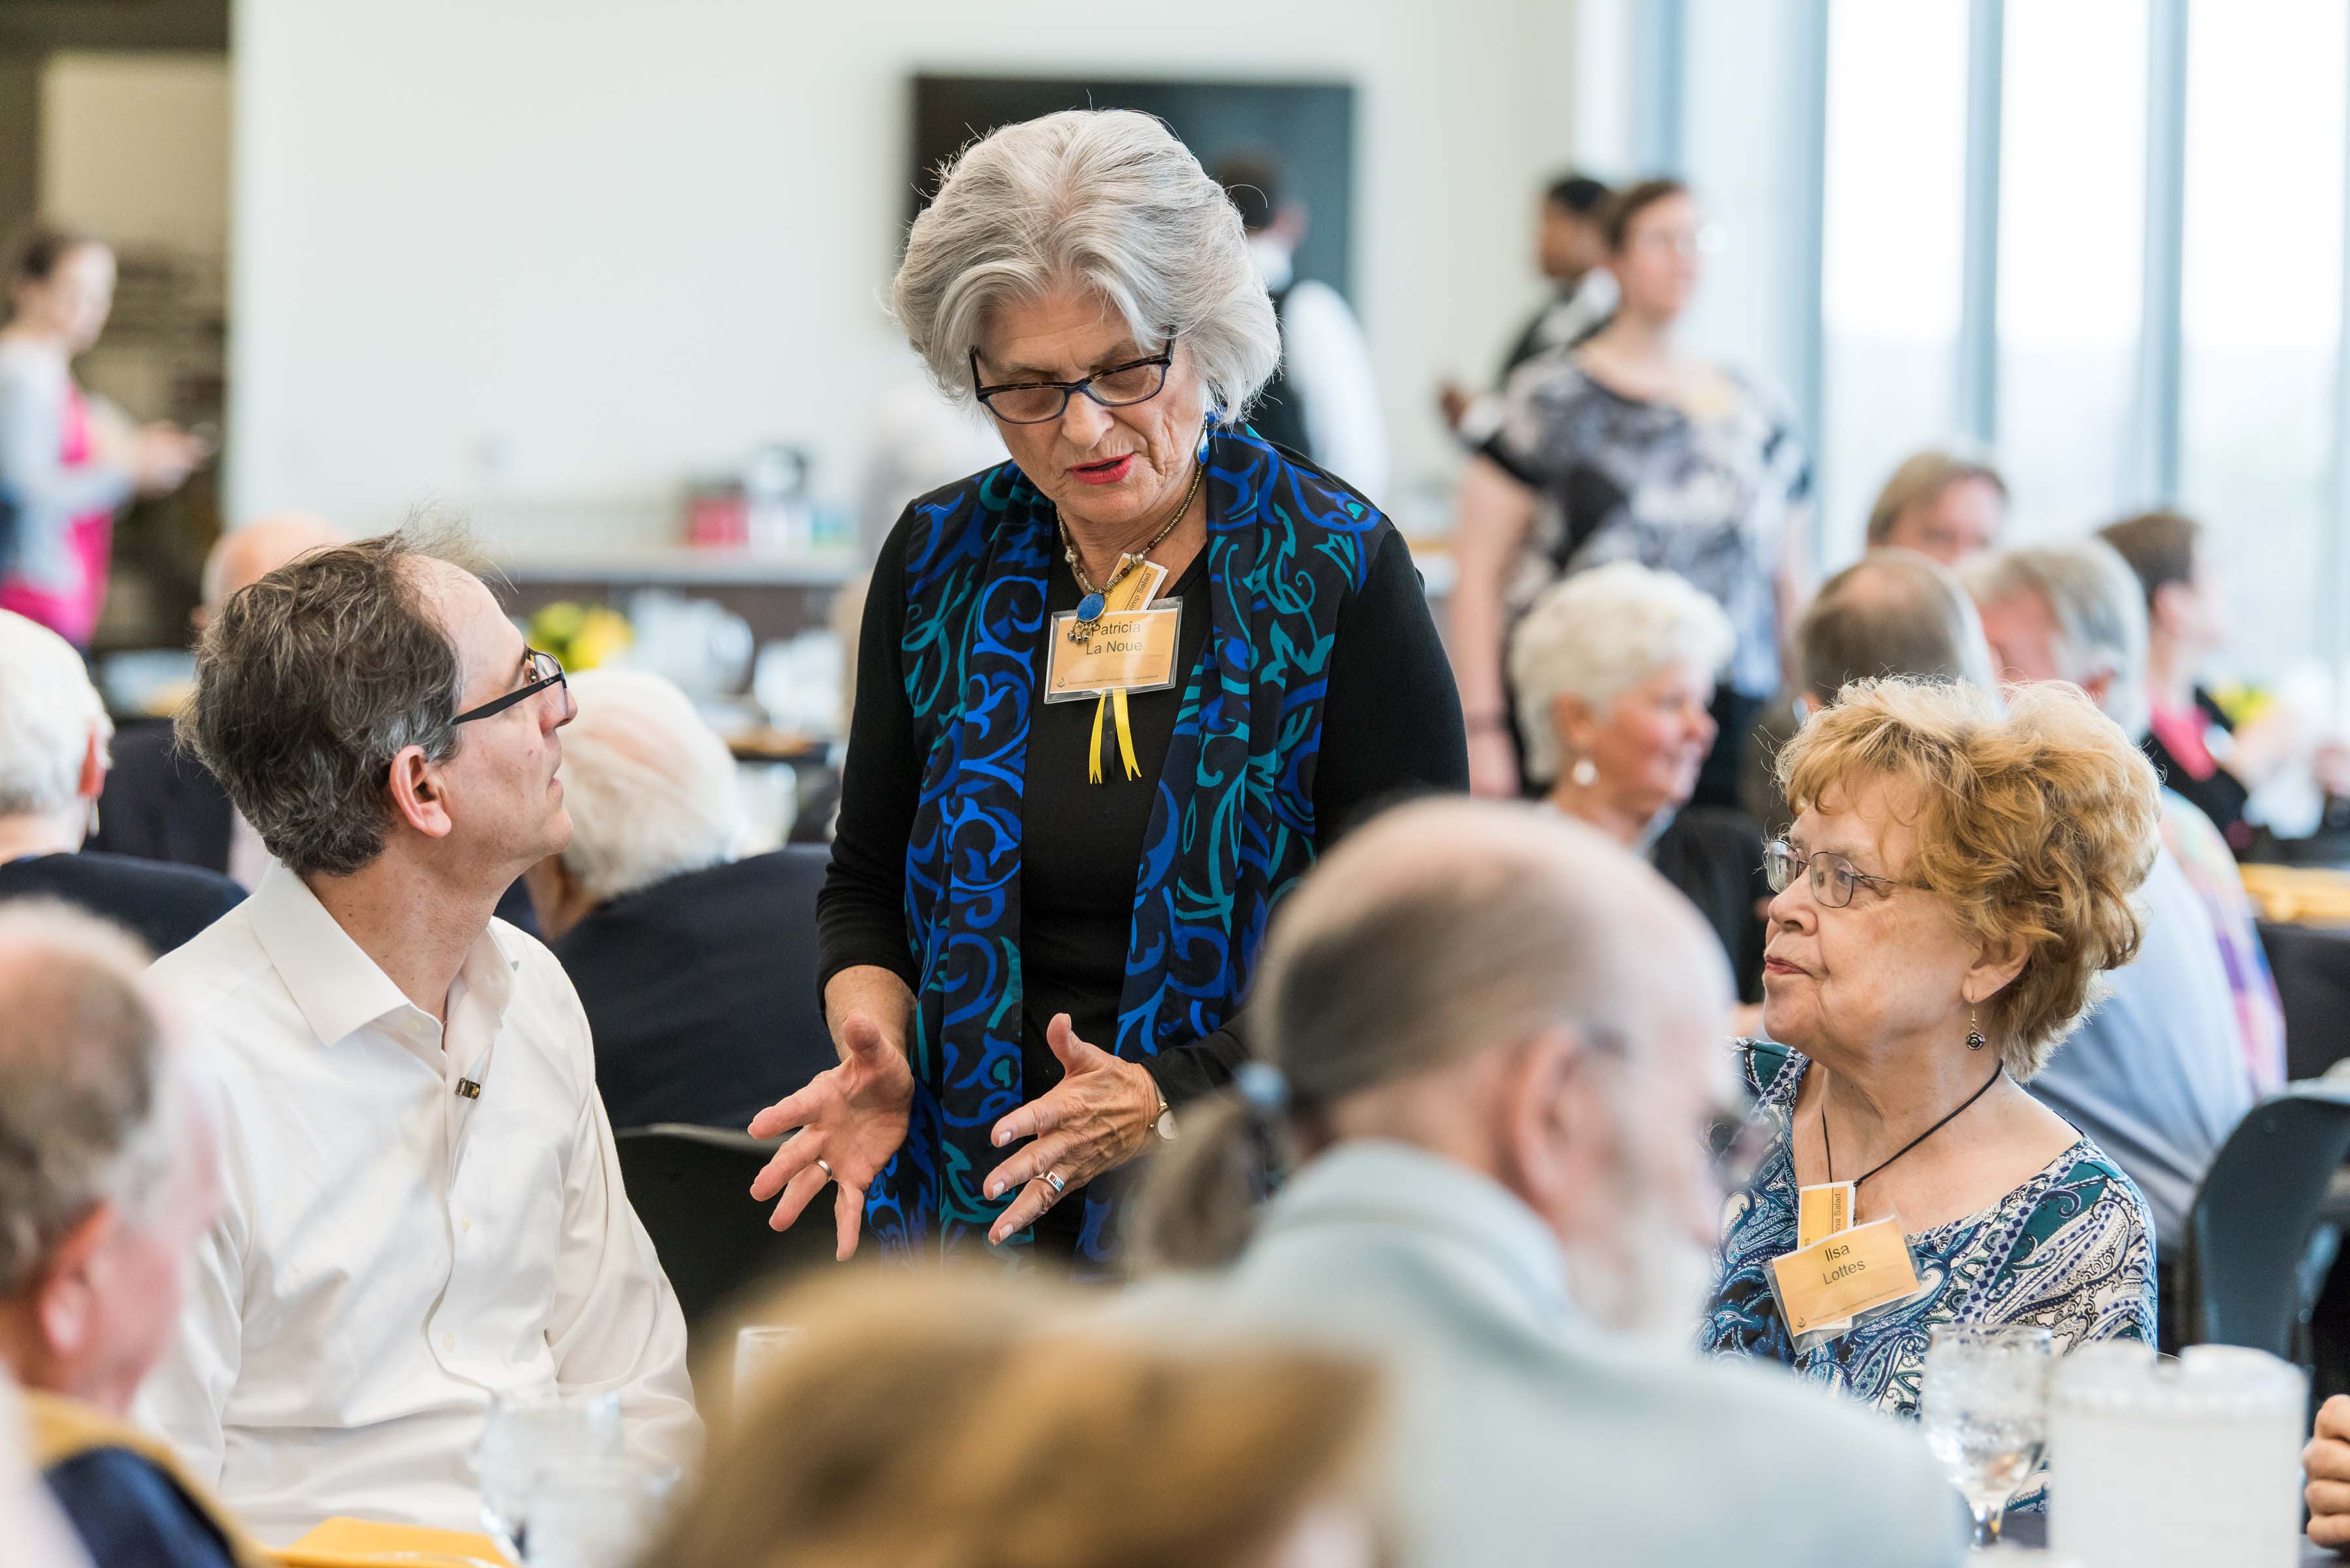 Woman approaches table talking, at Wisdom Institute lunch